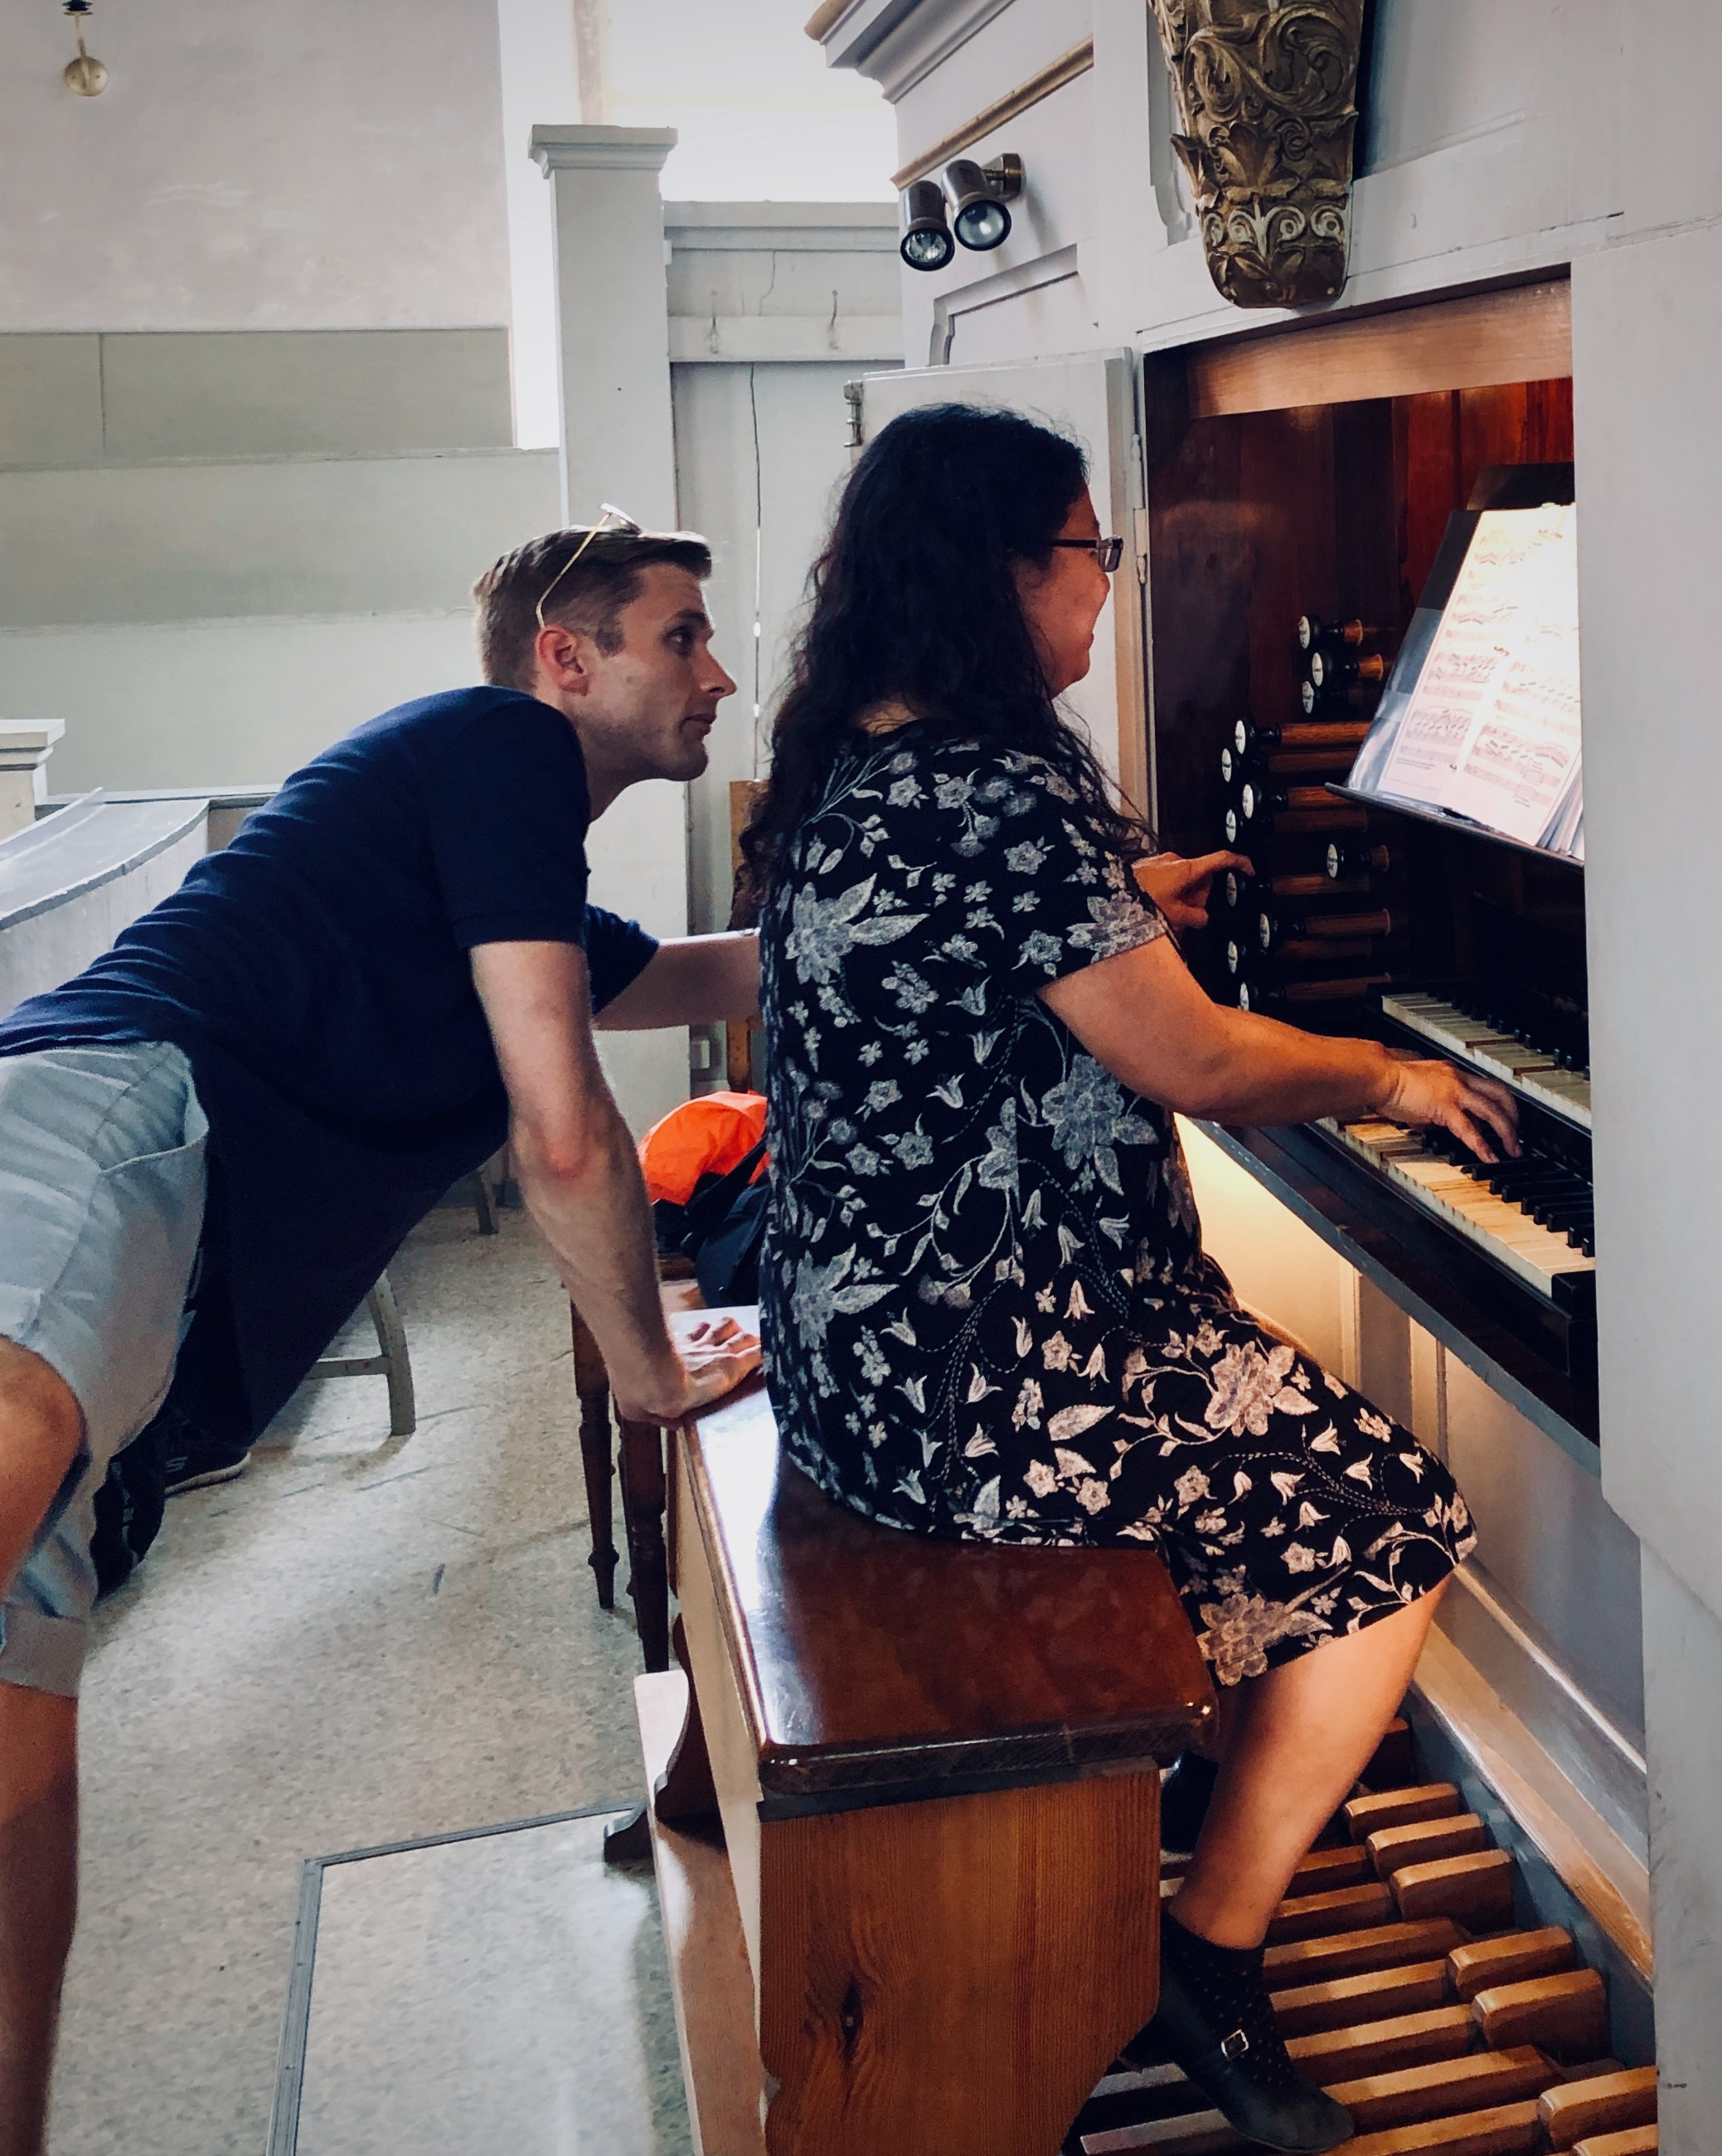 Jennifer Hsiao plays the 1869 Ladegast Organ, Marien-Magdalenen-Kirche, Naumburg, with assistance from Evan Currie.